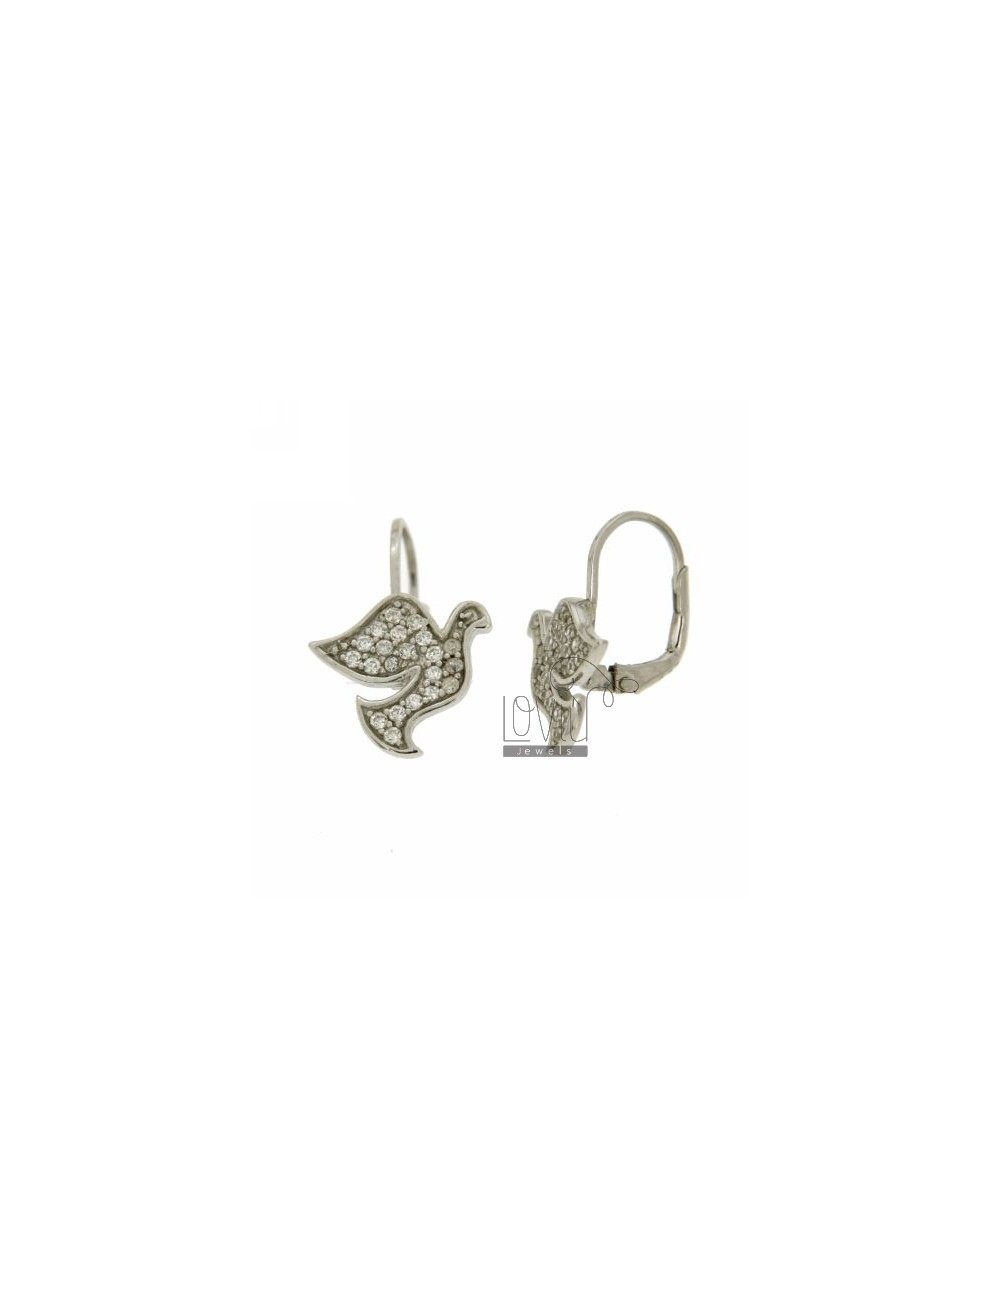 DOVE EARRINGS WITH PAVE nun &39OF ZIRCONIA IN RHODIUM AG TIT 925 ‰